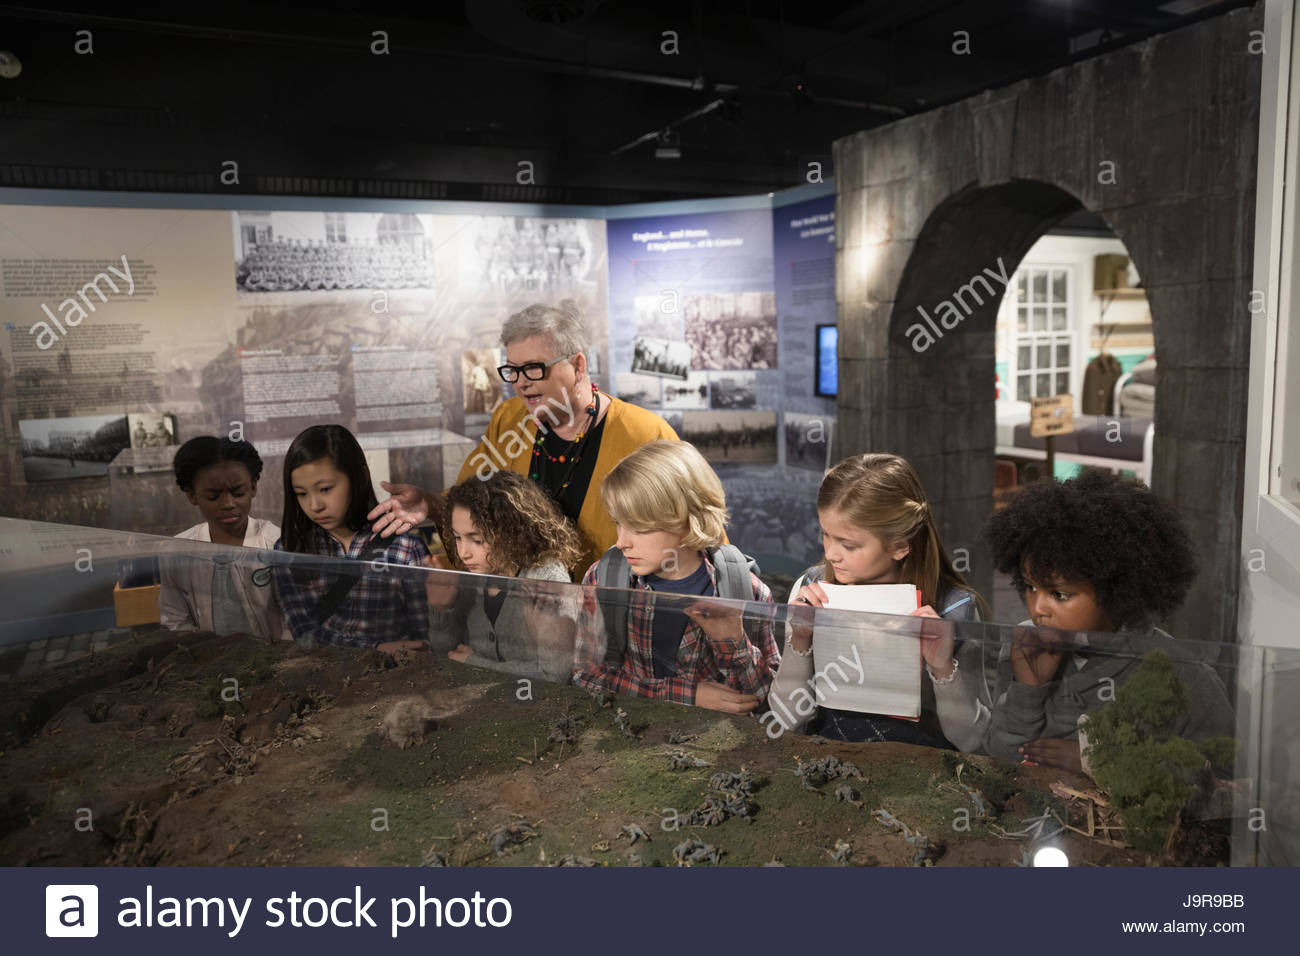 Docent and students looking at exhibit on field trip in war museum - Stock Image